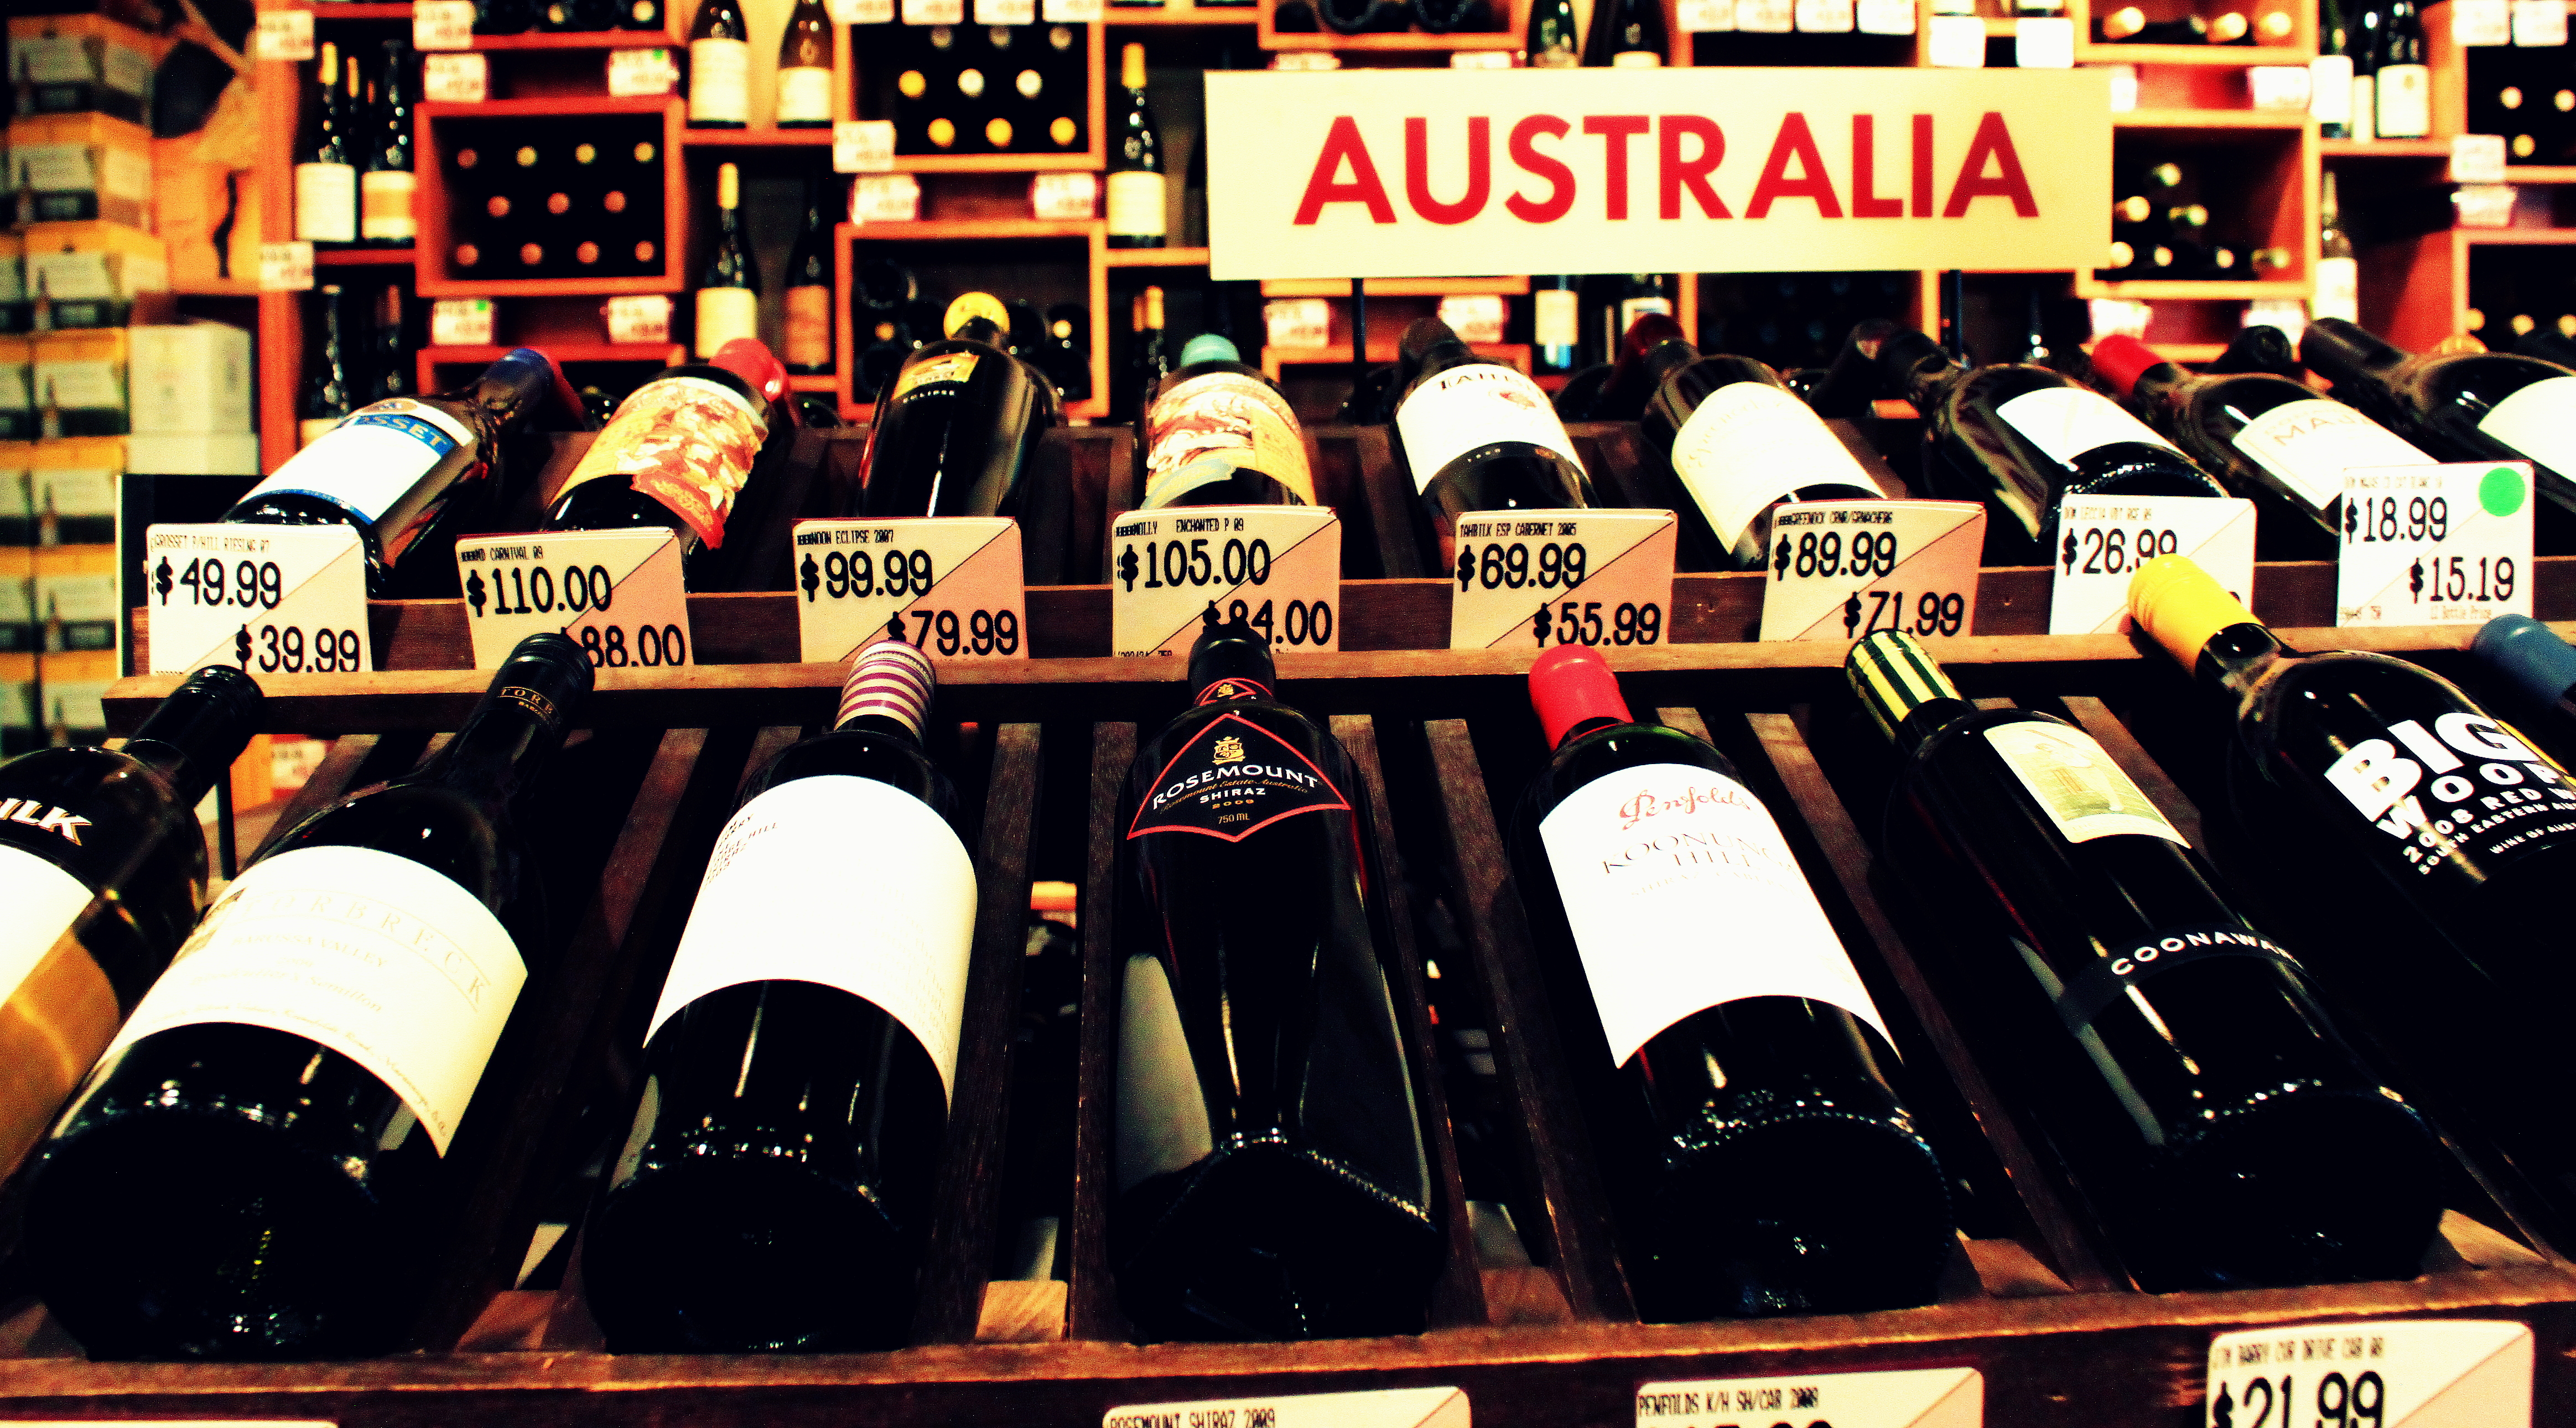 the wine industry in australia Interest in the australian wine industry goes back four generations owner patrick mcguigan the first of four generations to enter the wine industry was a dairy farmer by trade percy mcguigan 's career was spent at penfolds prior to retirement in 1968 percy purchased dalwood estate and renamed it wyndham estate.